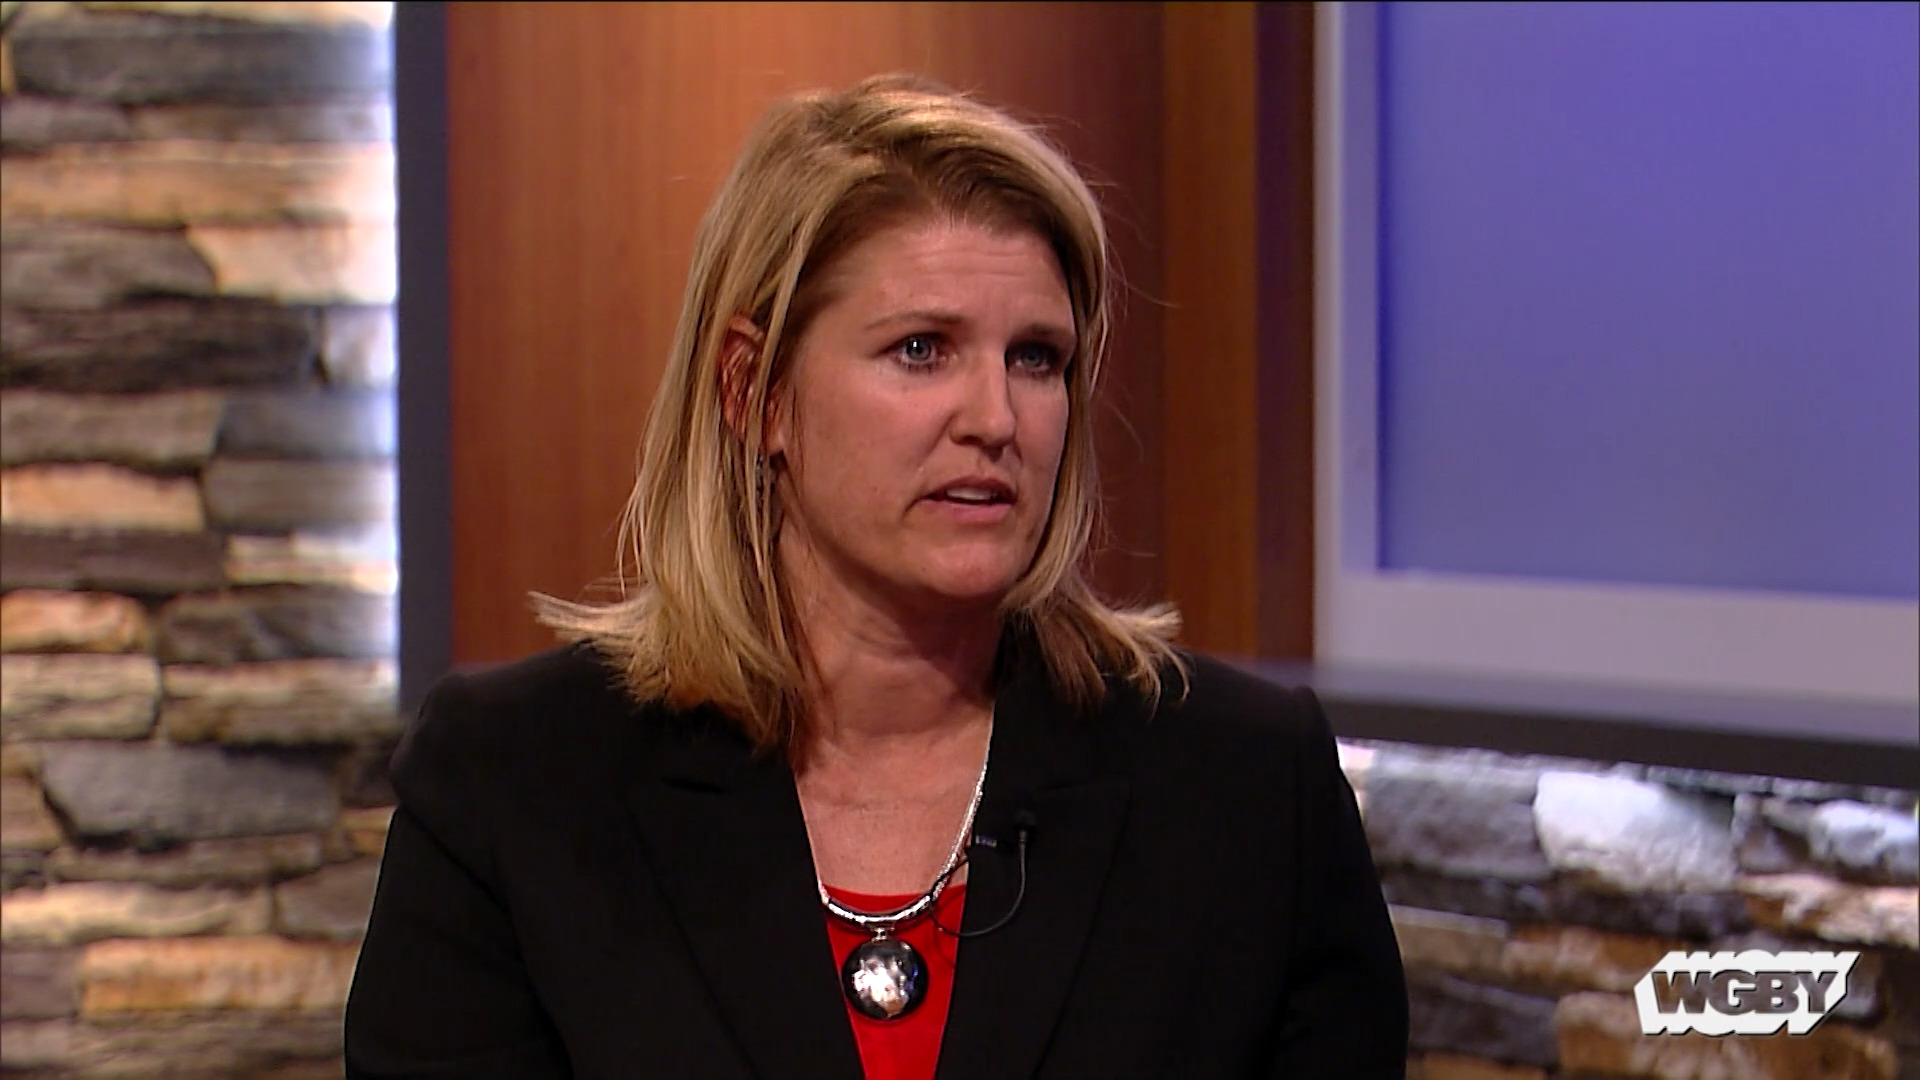 CEO Tracy Lovvorn won the Republican nomination for the Massachusetts 2nd Congressional District and will challenge incumbent Rep. Jim McGovern this fall.